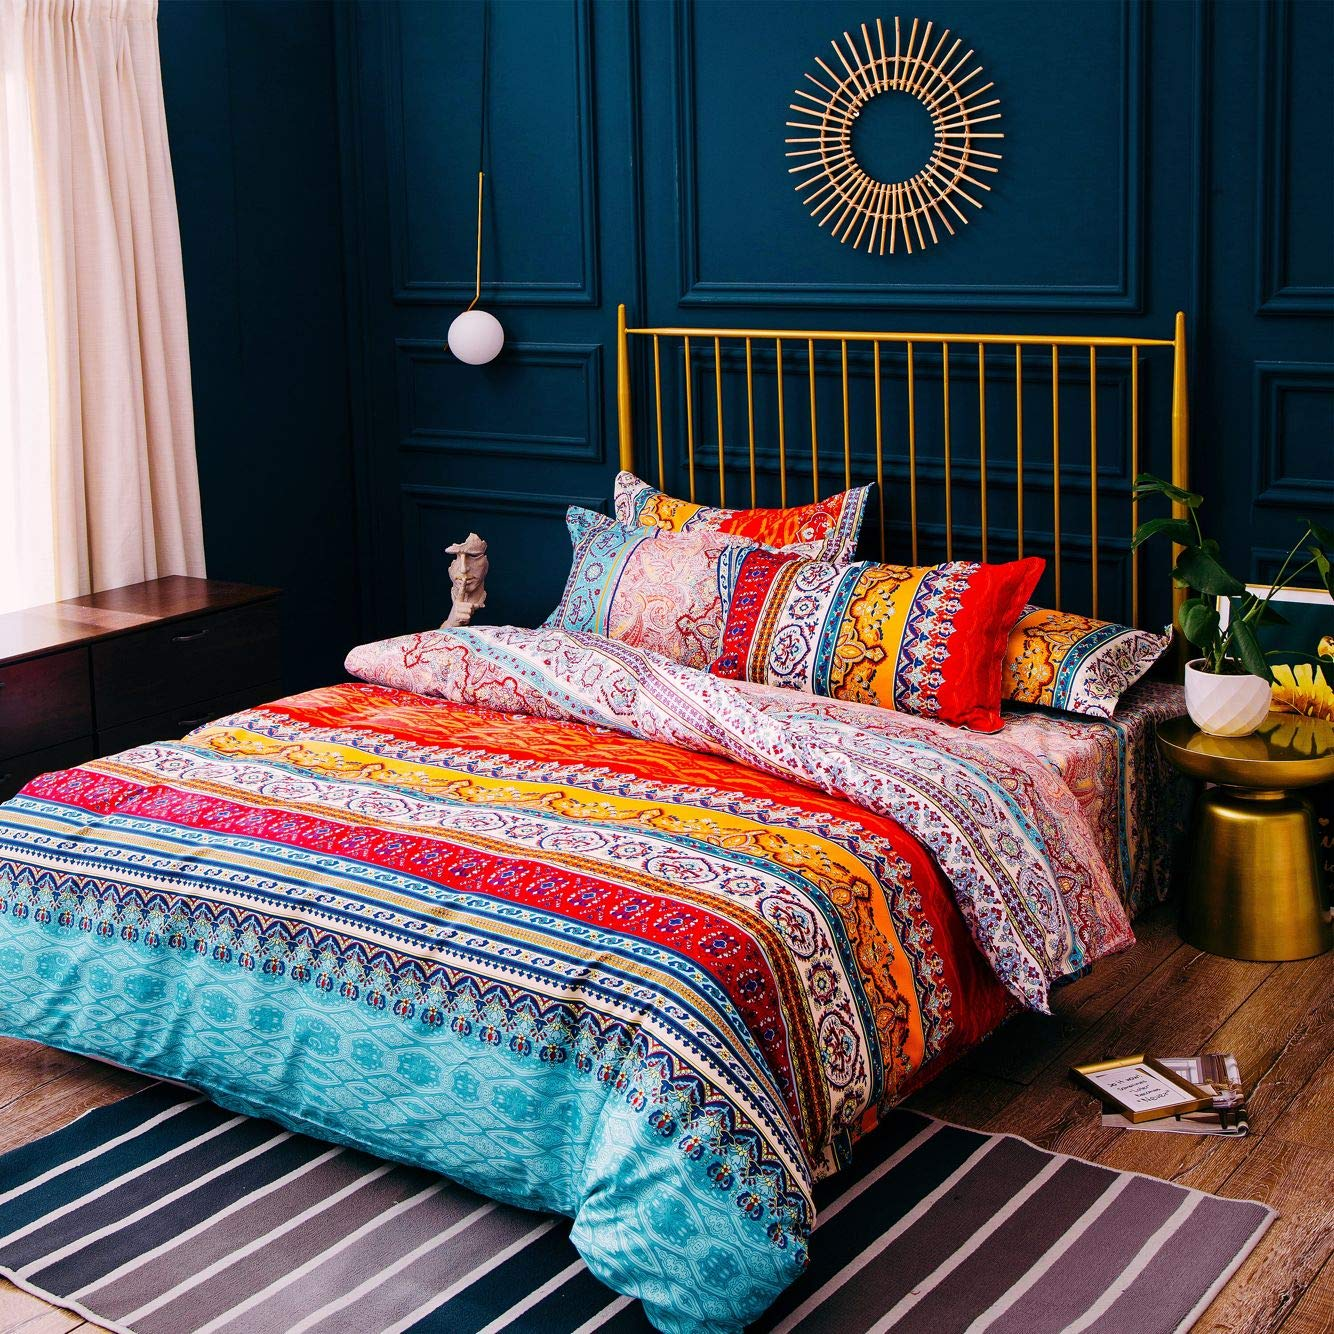 Bohemian Duvet Cover Queen Colorful Floral Boho Striped Bedding Set Ultra Soft Microfiber Double Duvet Cover Southwestern Indian Tribal Reversible Bedding Exotic Style Decor Bohemia Comforter Cover